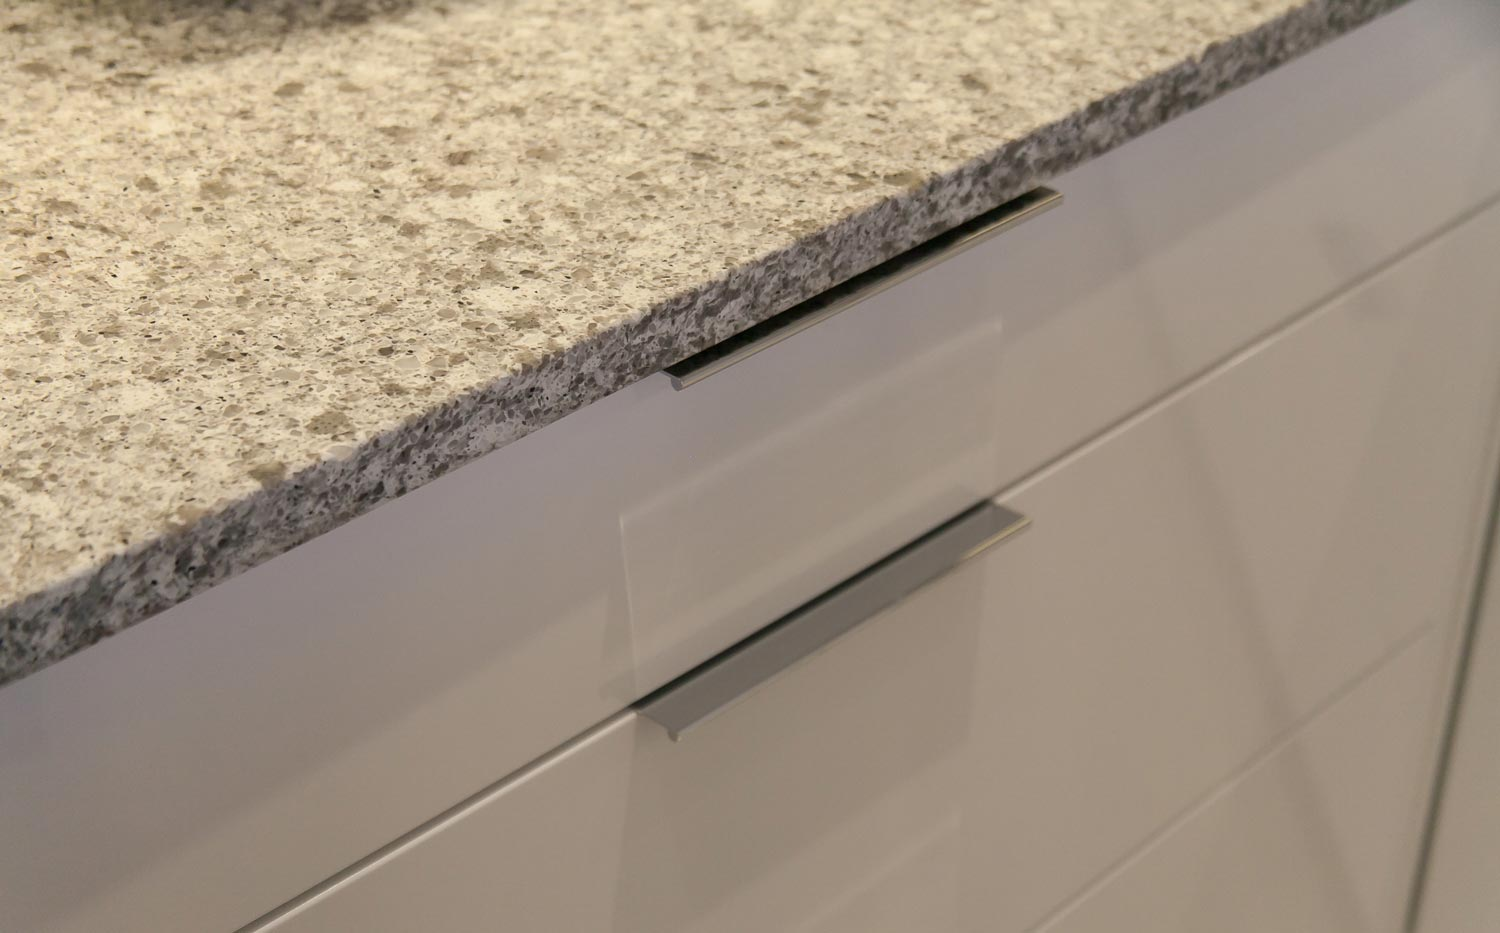 Granite countertops over gleaming white glass front cabinets